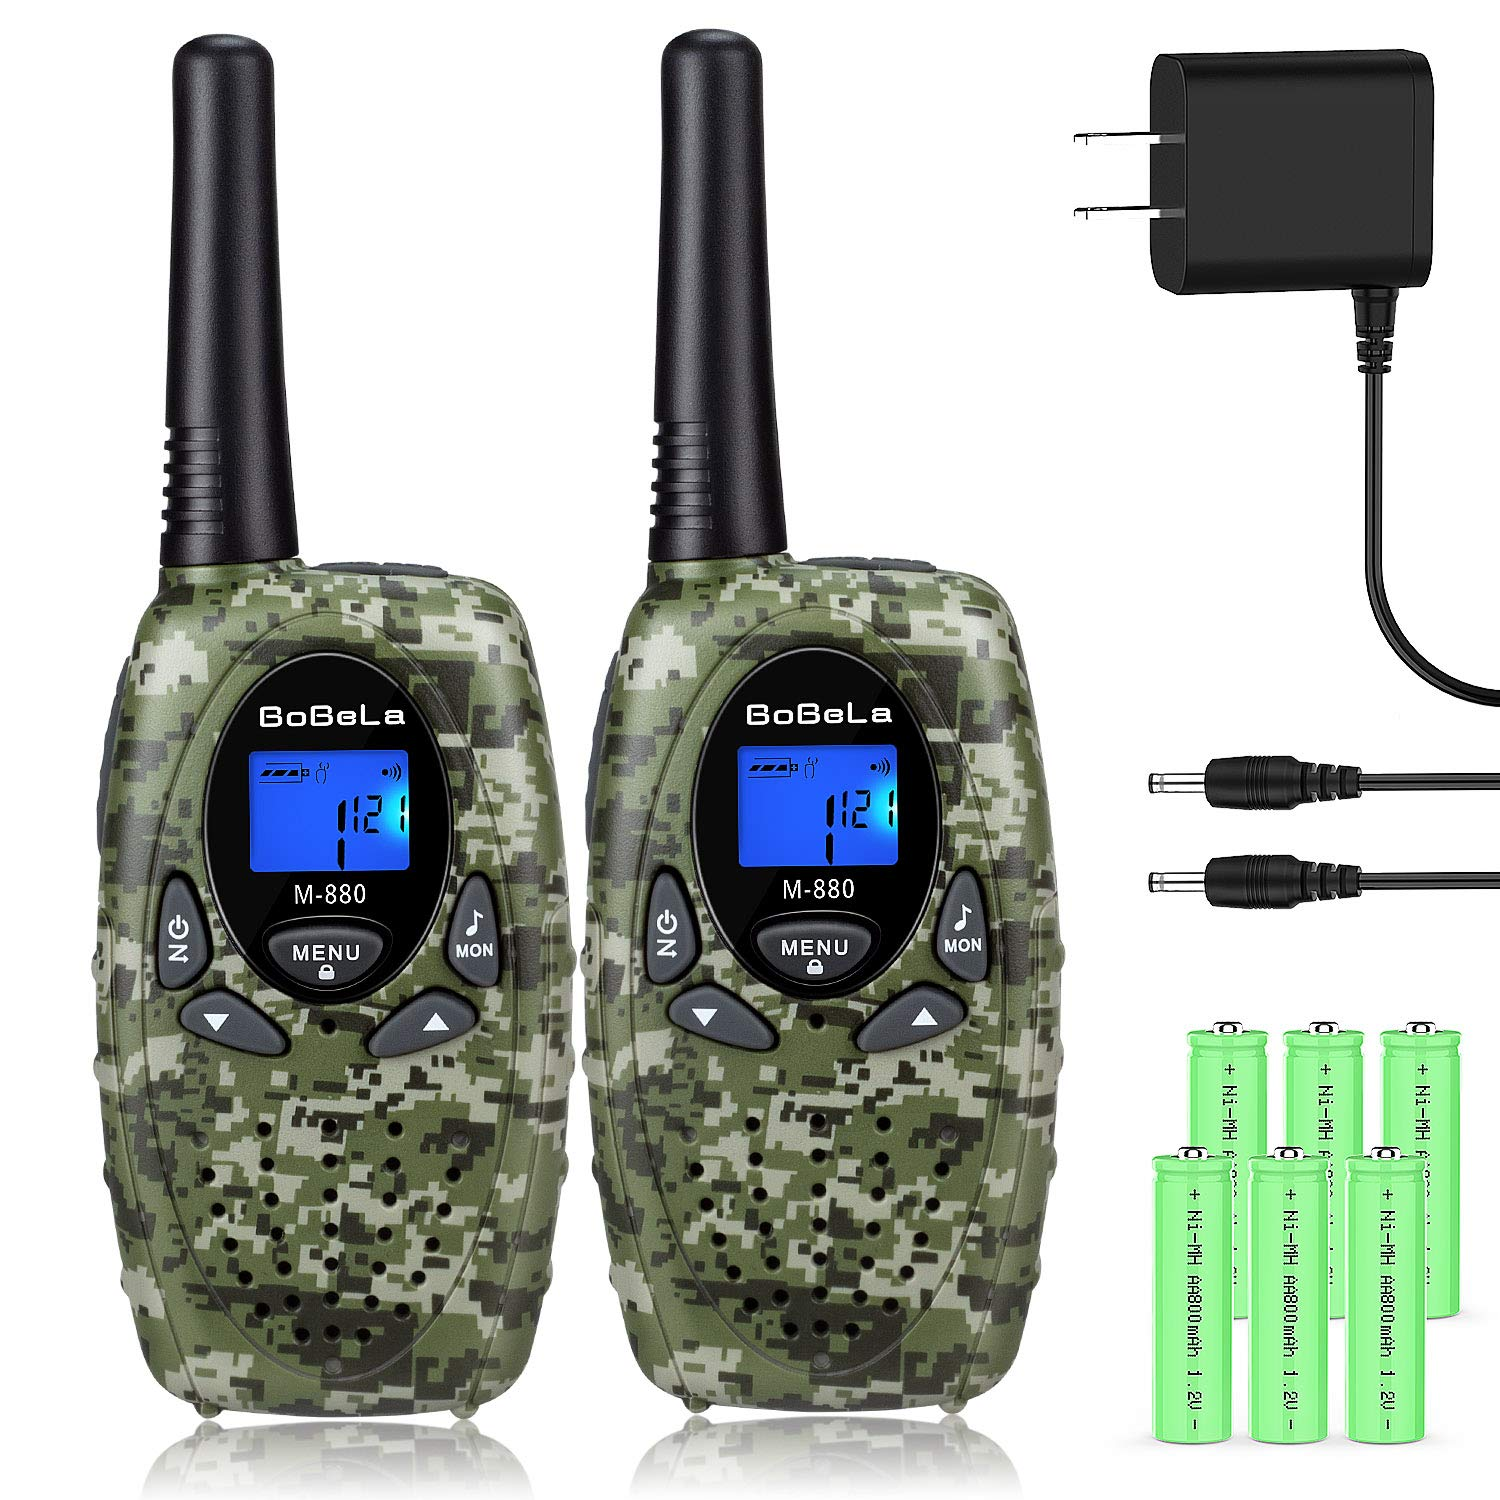 Bobela Walkie Talkies for Adults, Rechargeable 22 Channels Handheld Long Range Two Way Radio FRS GMRS Durable Walky Talky Clear Sound for Outdoor Adventures Camping Hiking (M880 Camo,2 Pack) by Bobela (Image #1)